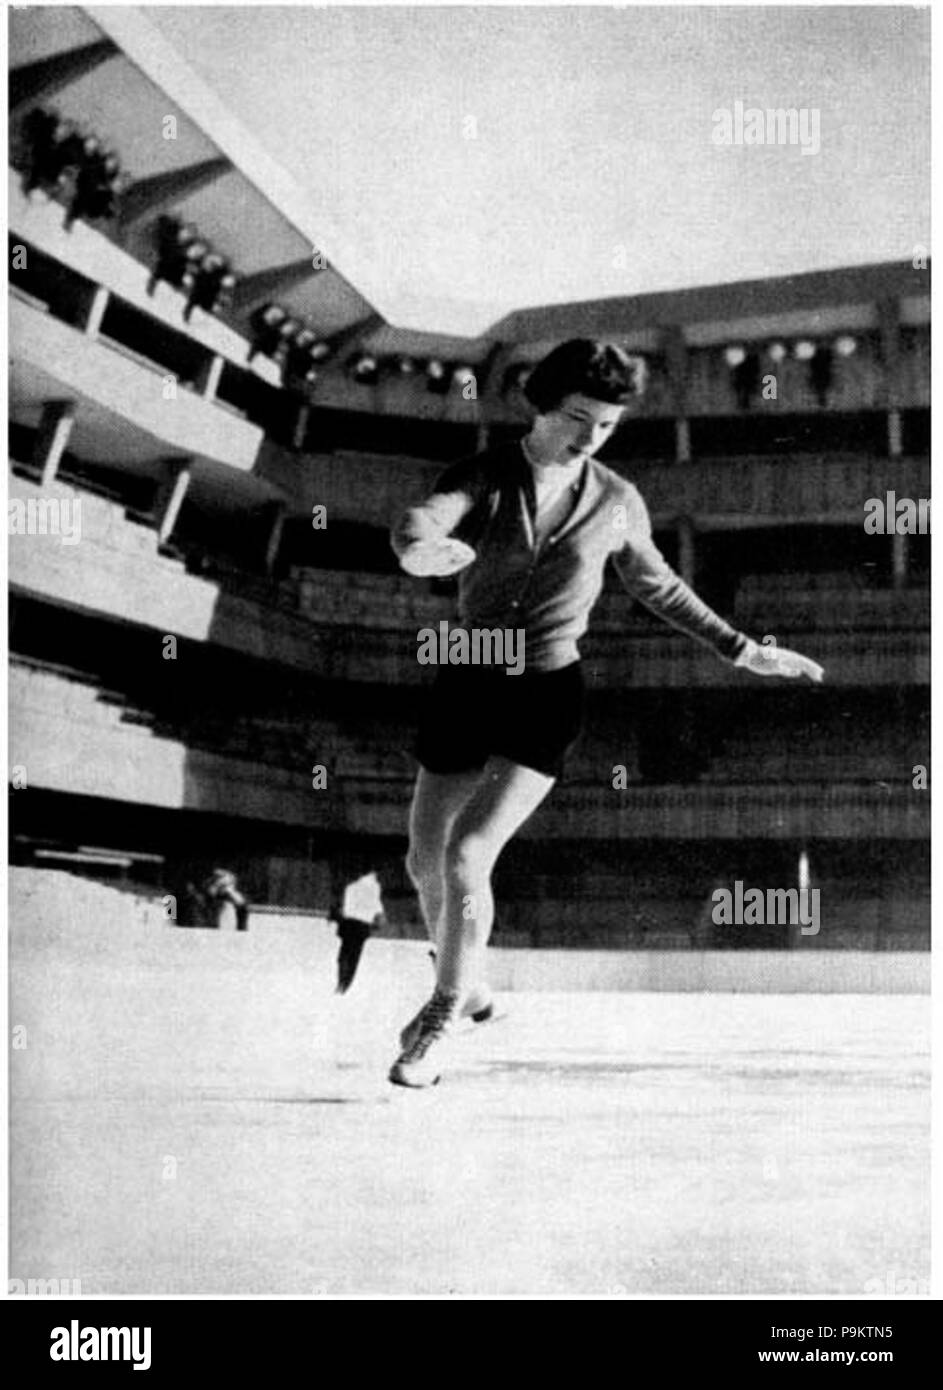 309 Tenley Albright at the 1956 Winter Olympics - Stock Image